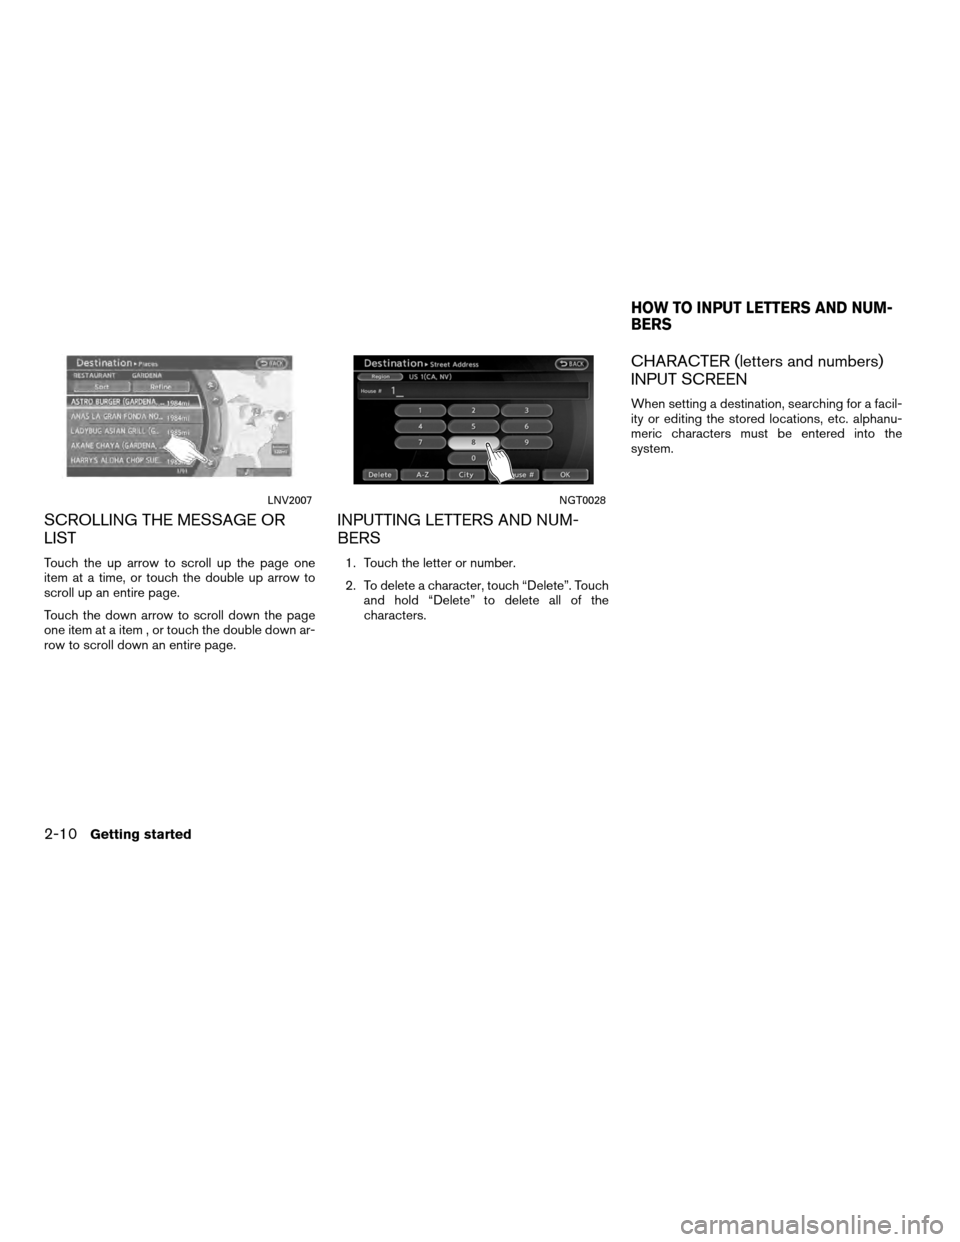 NISSAN ALTIMA COUPE 2011 D32 / 4.G Navigation Manual, Page 18